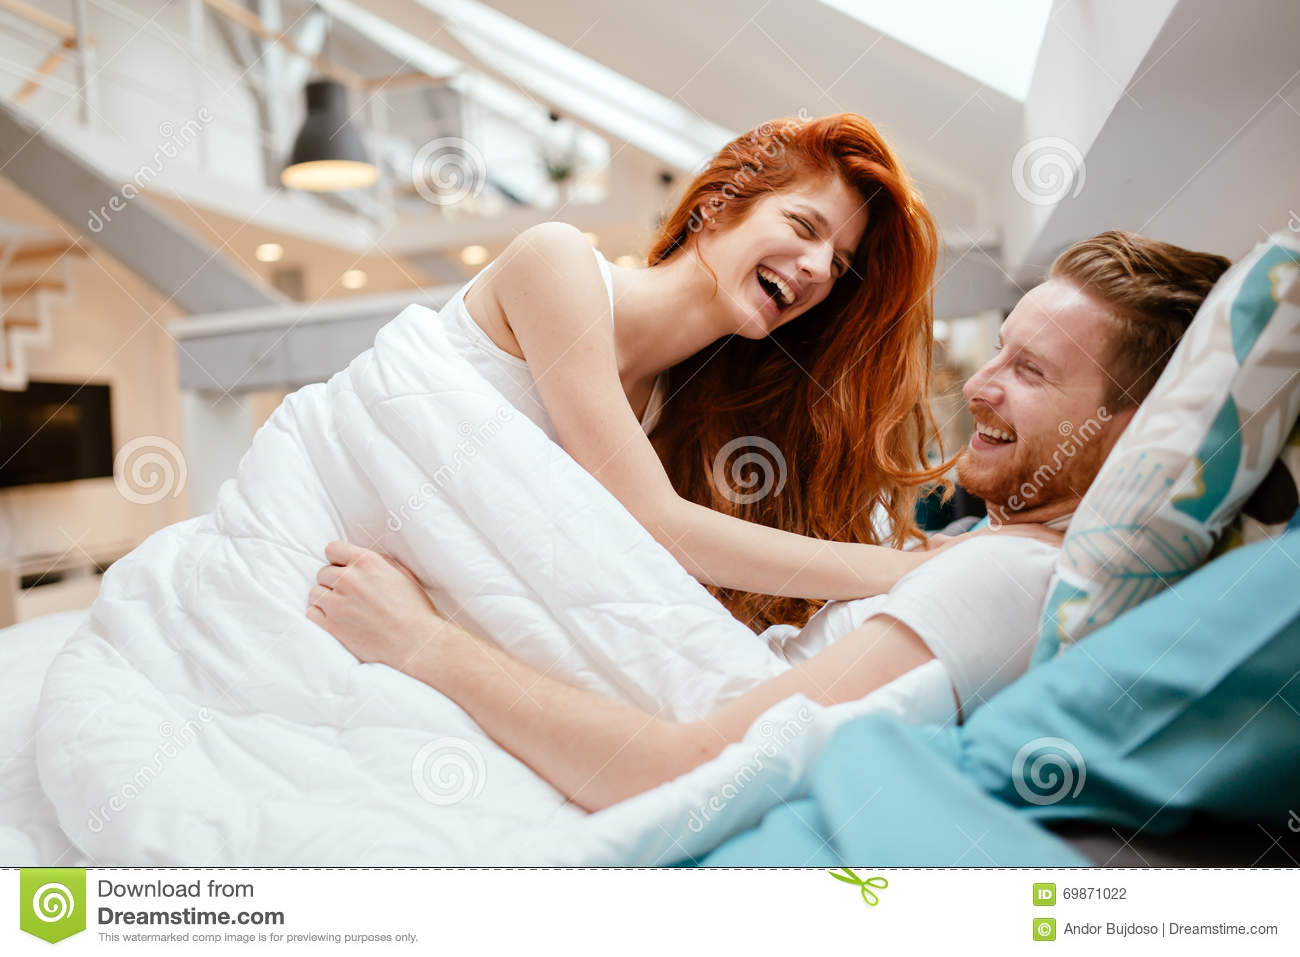 Royalty Free Stock Photo  Download Romantic Couple In Love Lying On Bed. Romantic Couple In Love Lying On Bed Stock Photo   Image  69871022